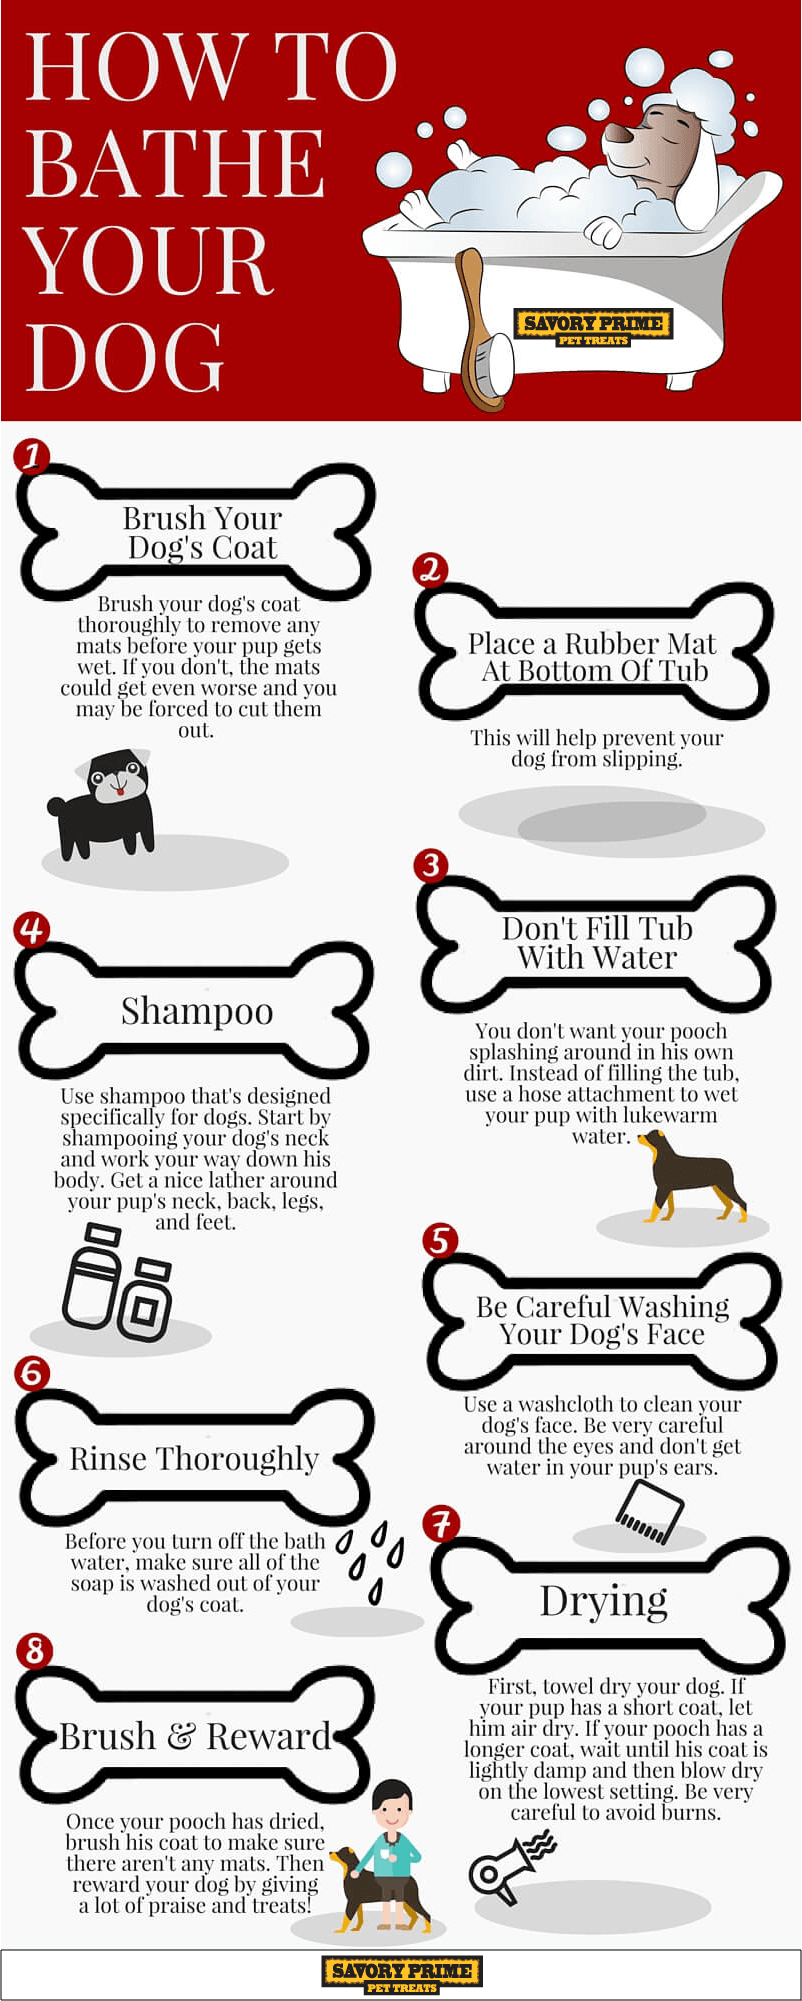 how often should i bathe my chihuahua how to bathe your dog infographic savory prime pet treats 5670